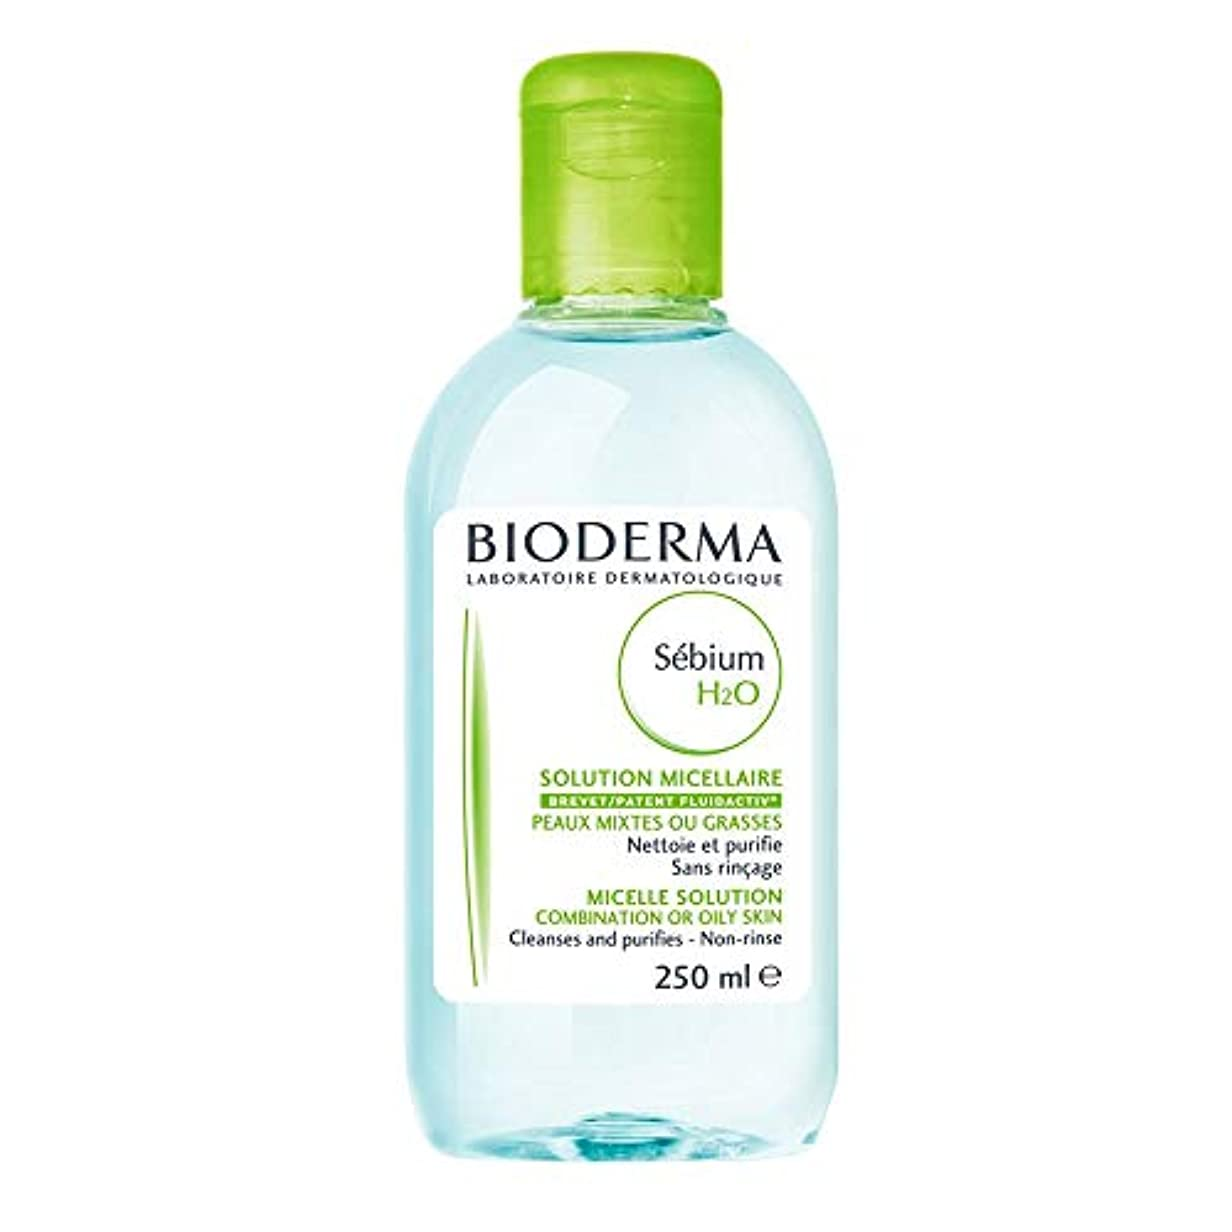 Bioderma - Sebium H2O Purifying Cleansing Micelle Solution (250 ml) [並行輸入品]